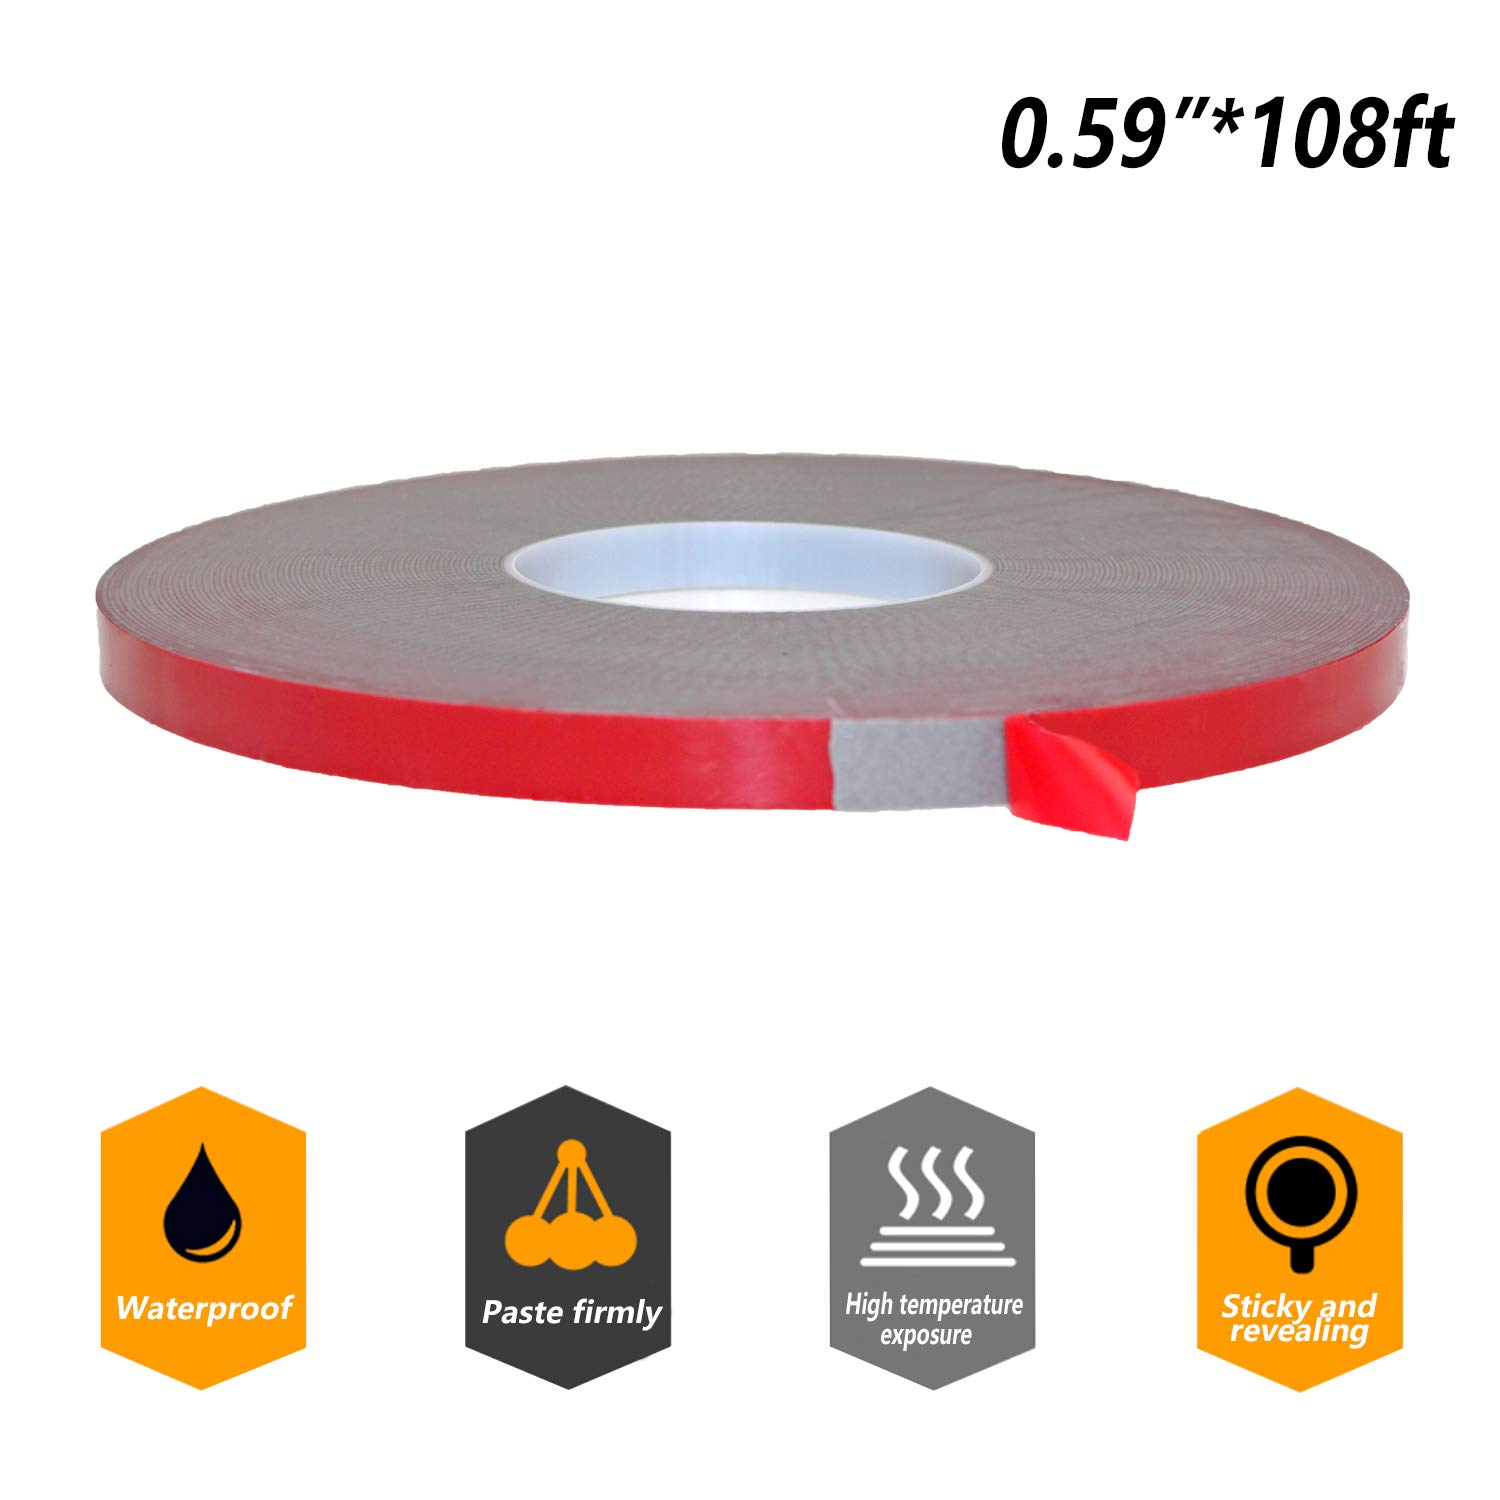 Double Sided Tape - Heavy Duty Mounting Adhesive Tape,VHB Waterproof Foam Tape for LED Strip Lights,Home Decoration, Office Decorations (0.59In x 108 Ft, Black) by Storystore